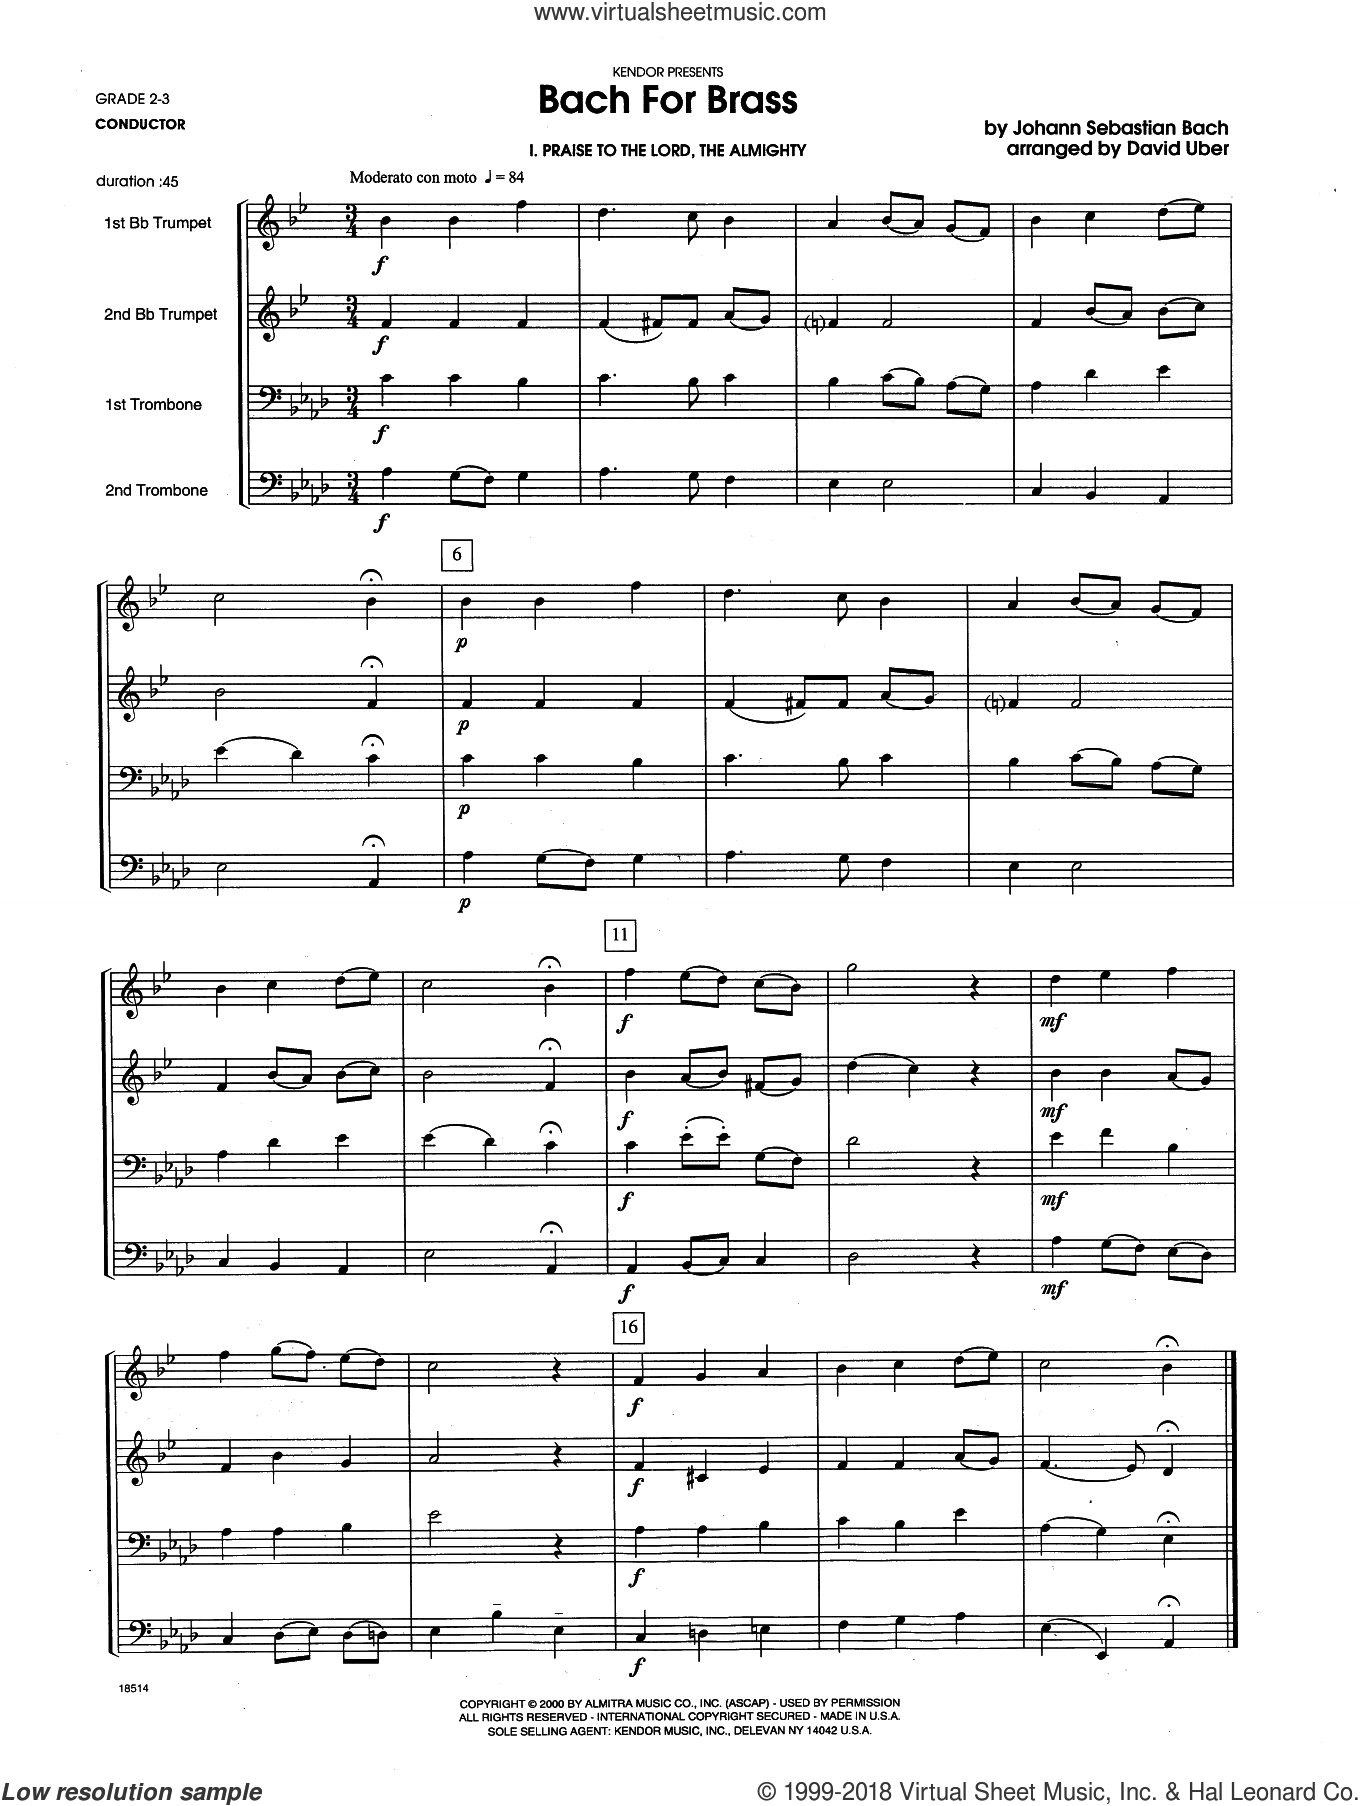 Bach For Brass (COMPLETE) sheet music for brass quartet by Johann Sebastian Bach and David Uber, classical score, intermediate skill level